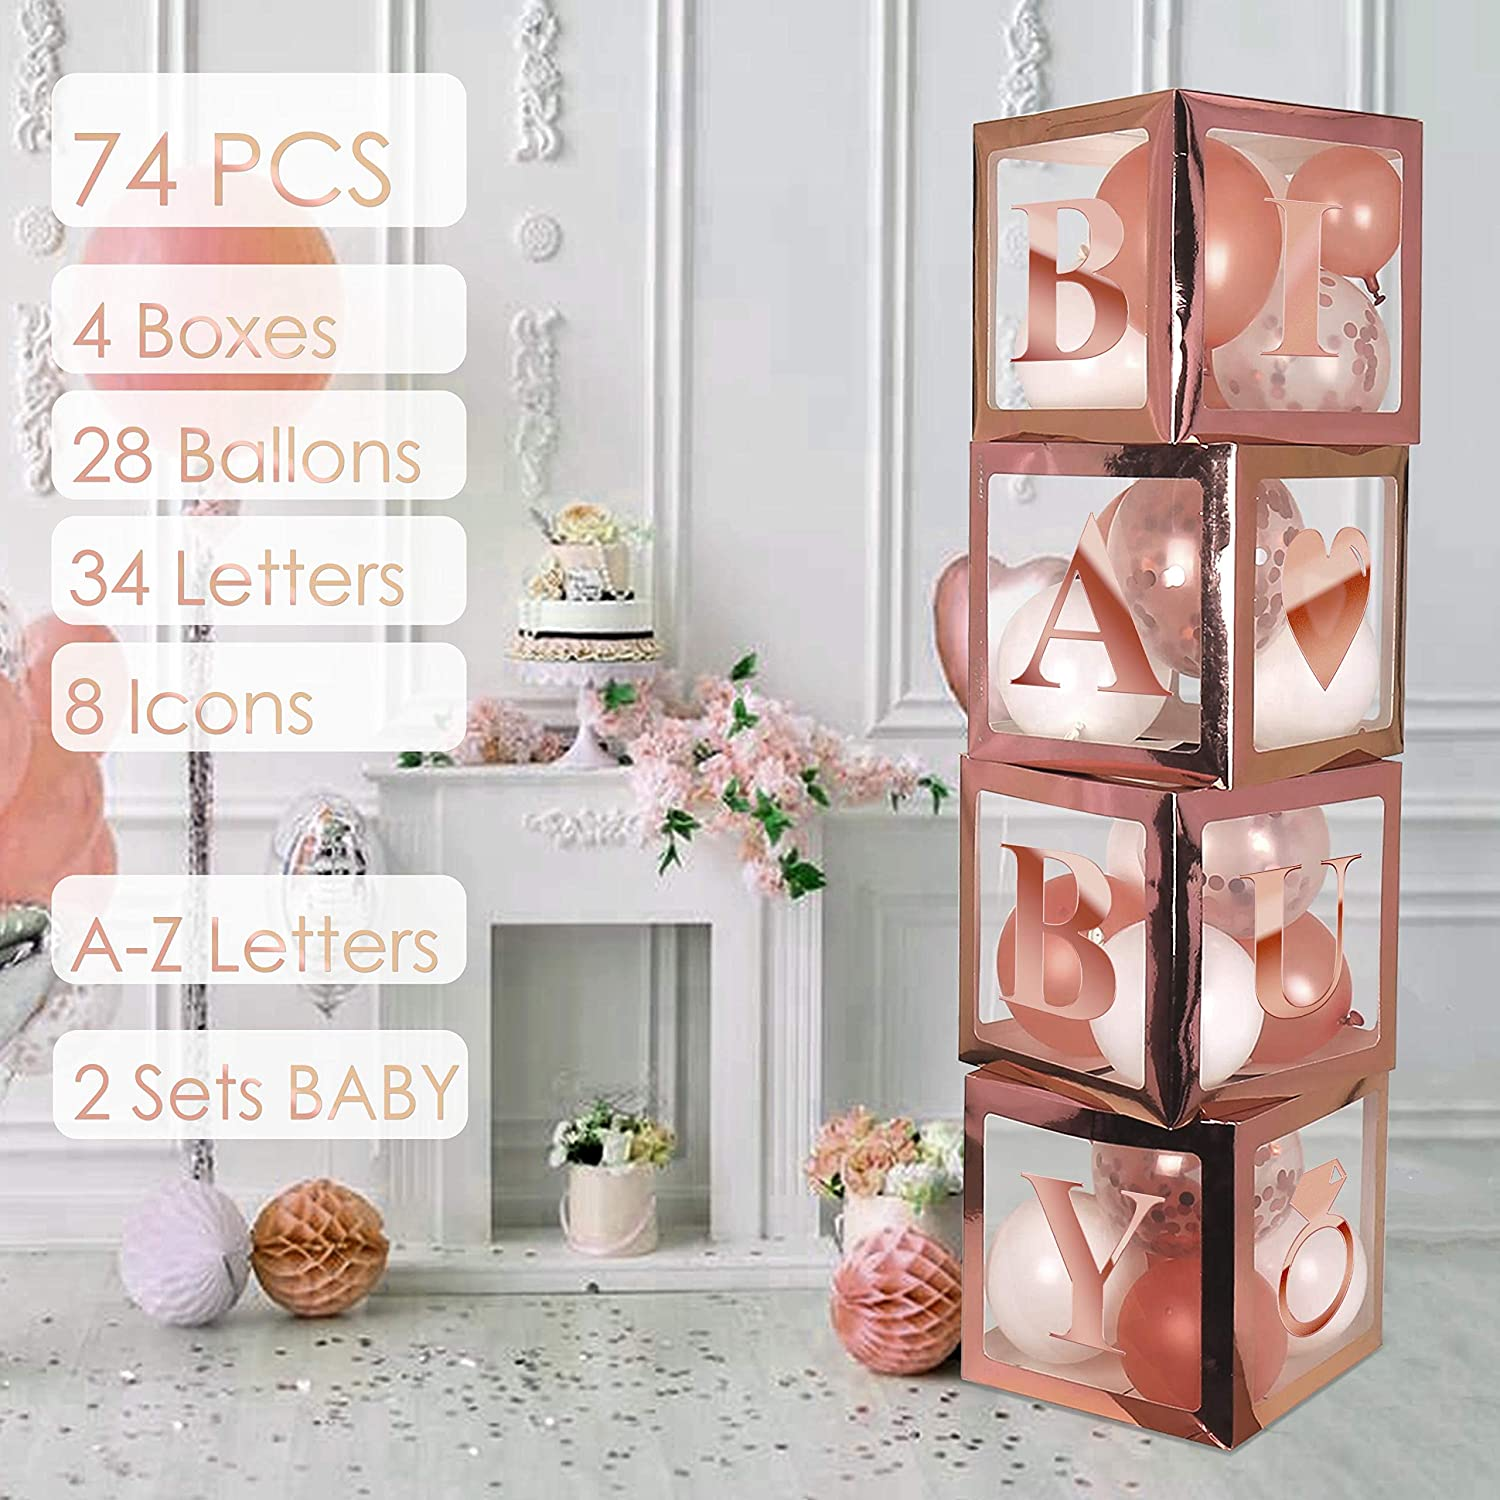 BaraBox Rose Gold Baby Shower Decor and Gender Reveal Party Supplies. Included - 4 Premium Rose Gold ABC Blocks 28 Balloons 26 Alphabet Letters 8 Party Icons 2 Baby Set for Girl and Boy Bithday